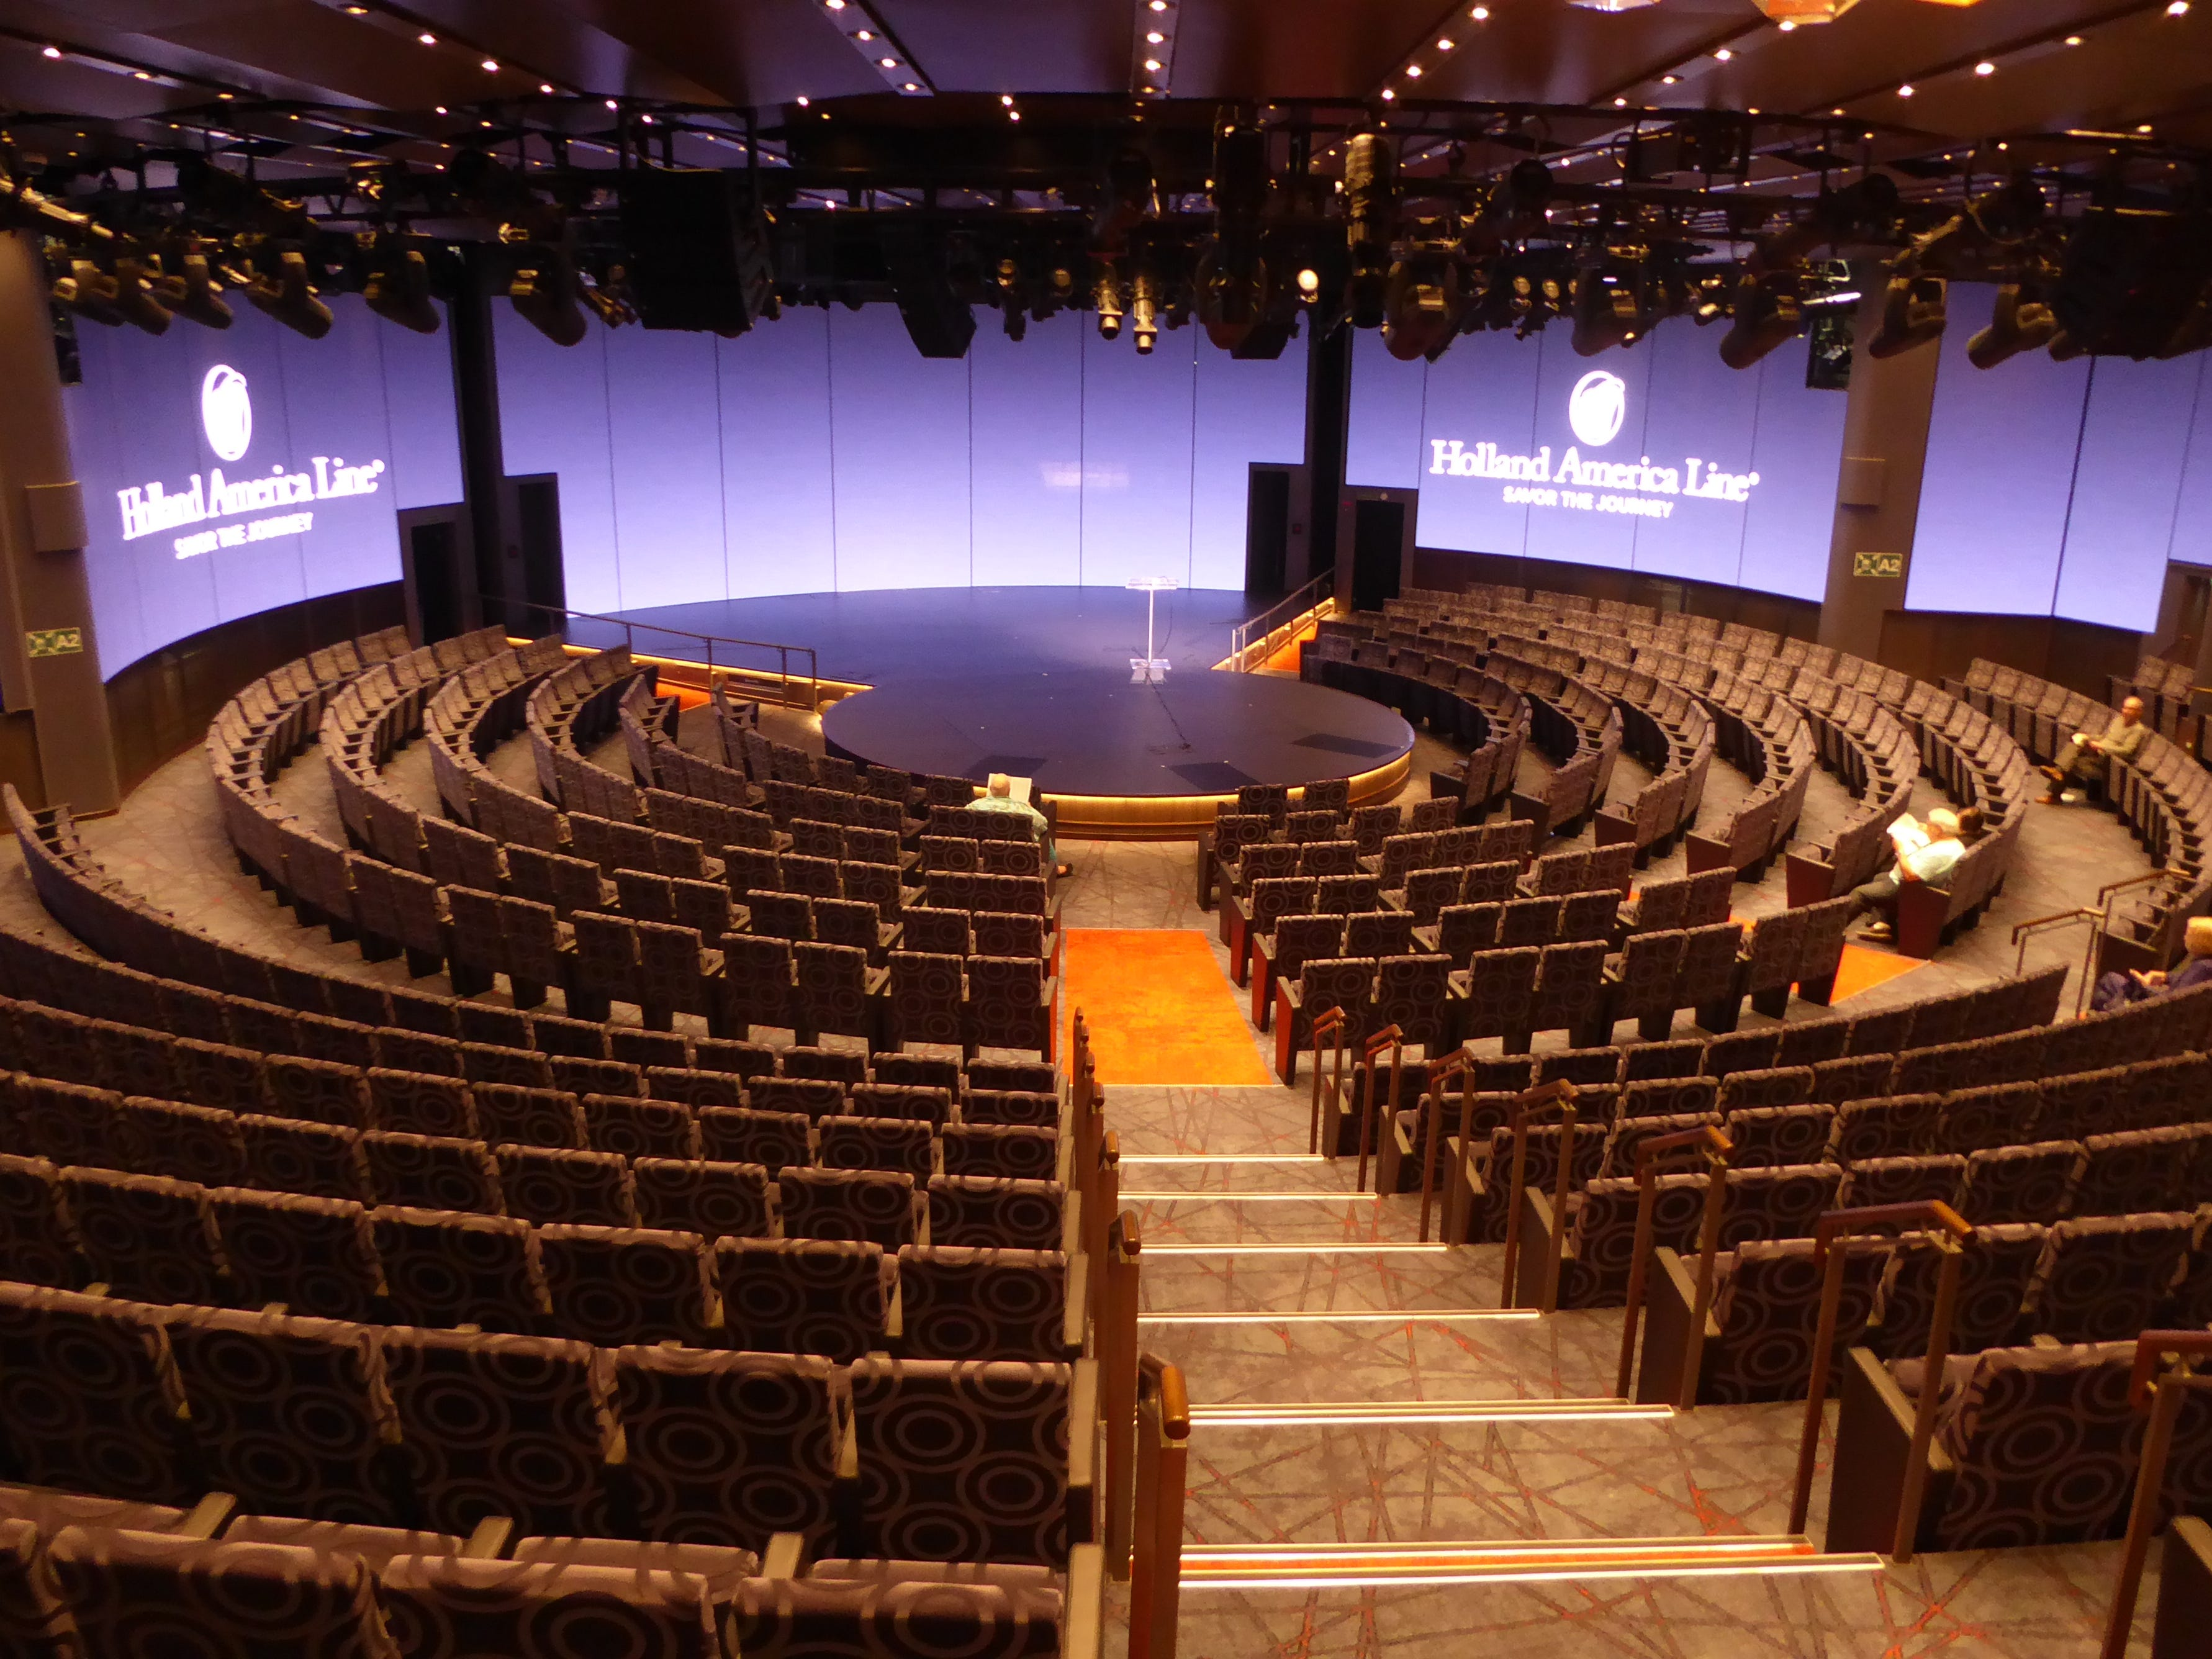 The 667-seat World Stage is the Nieuw Statendam's largest indoor entertainment venue, featuring an in-the-round stage and state-of-the-art, floor-to-ceiling video screens.  It begins two full decks of public spaces on Decks 3 and 2.